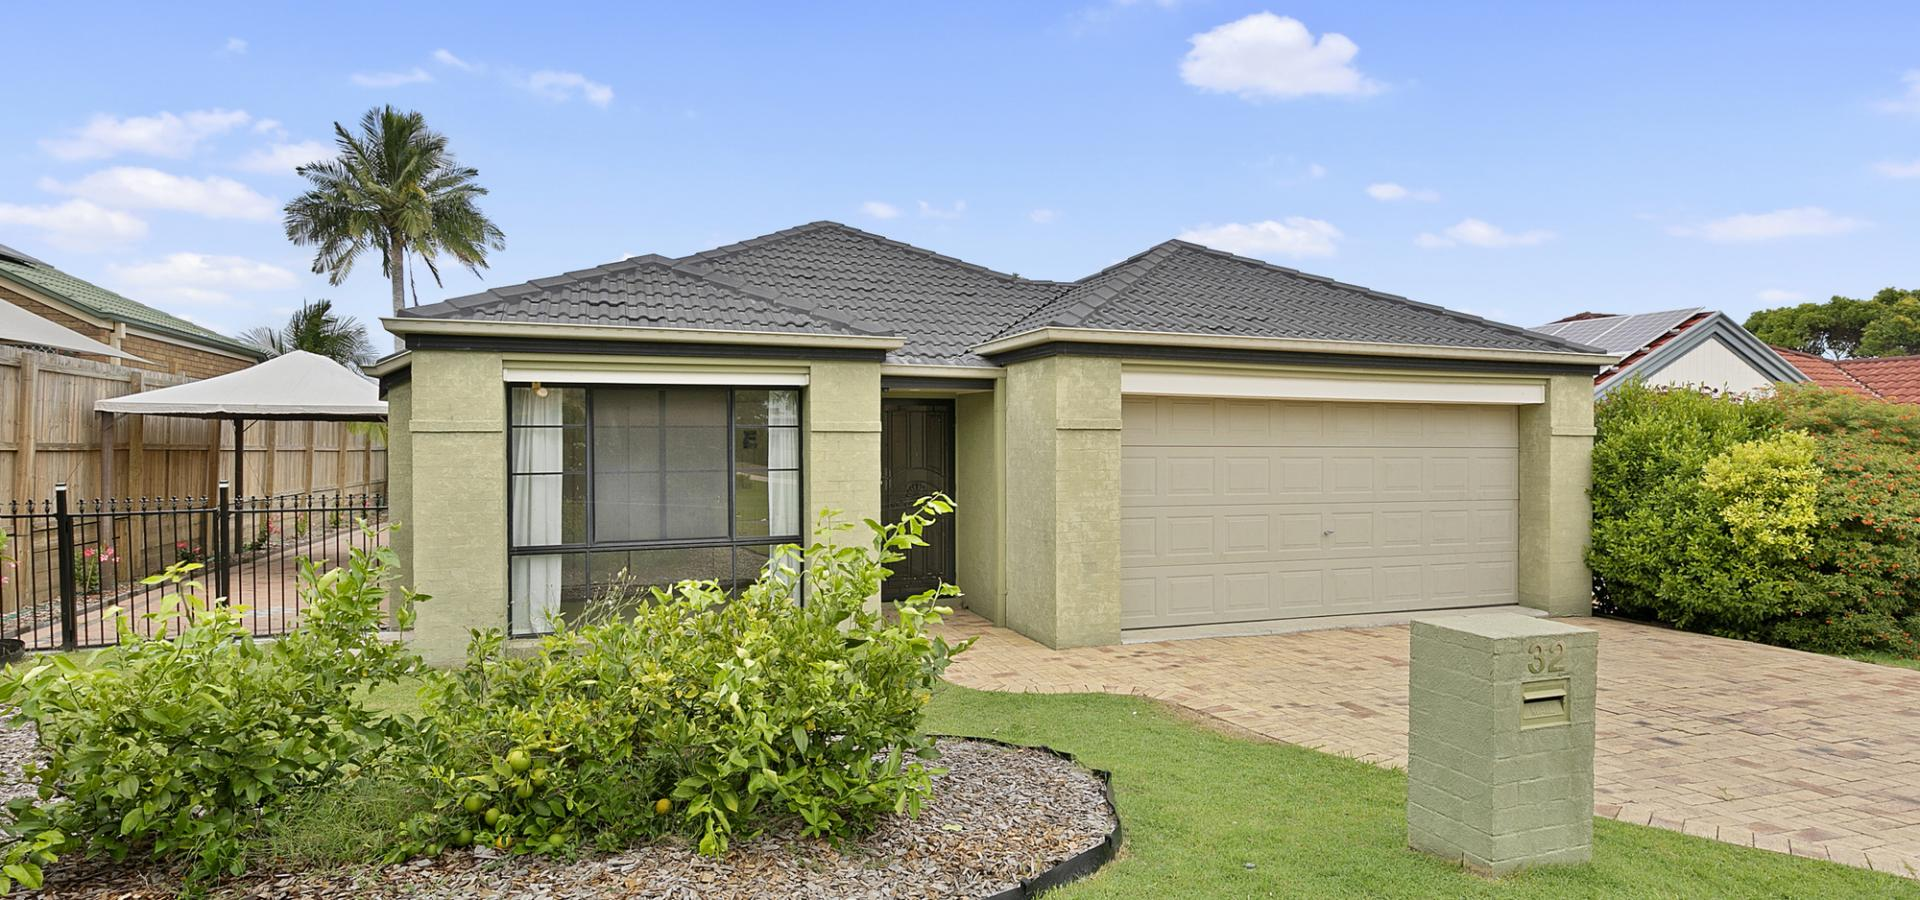 Spacious Open Plan Living - in the Tingalpa State School Catchment